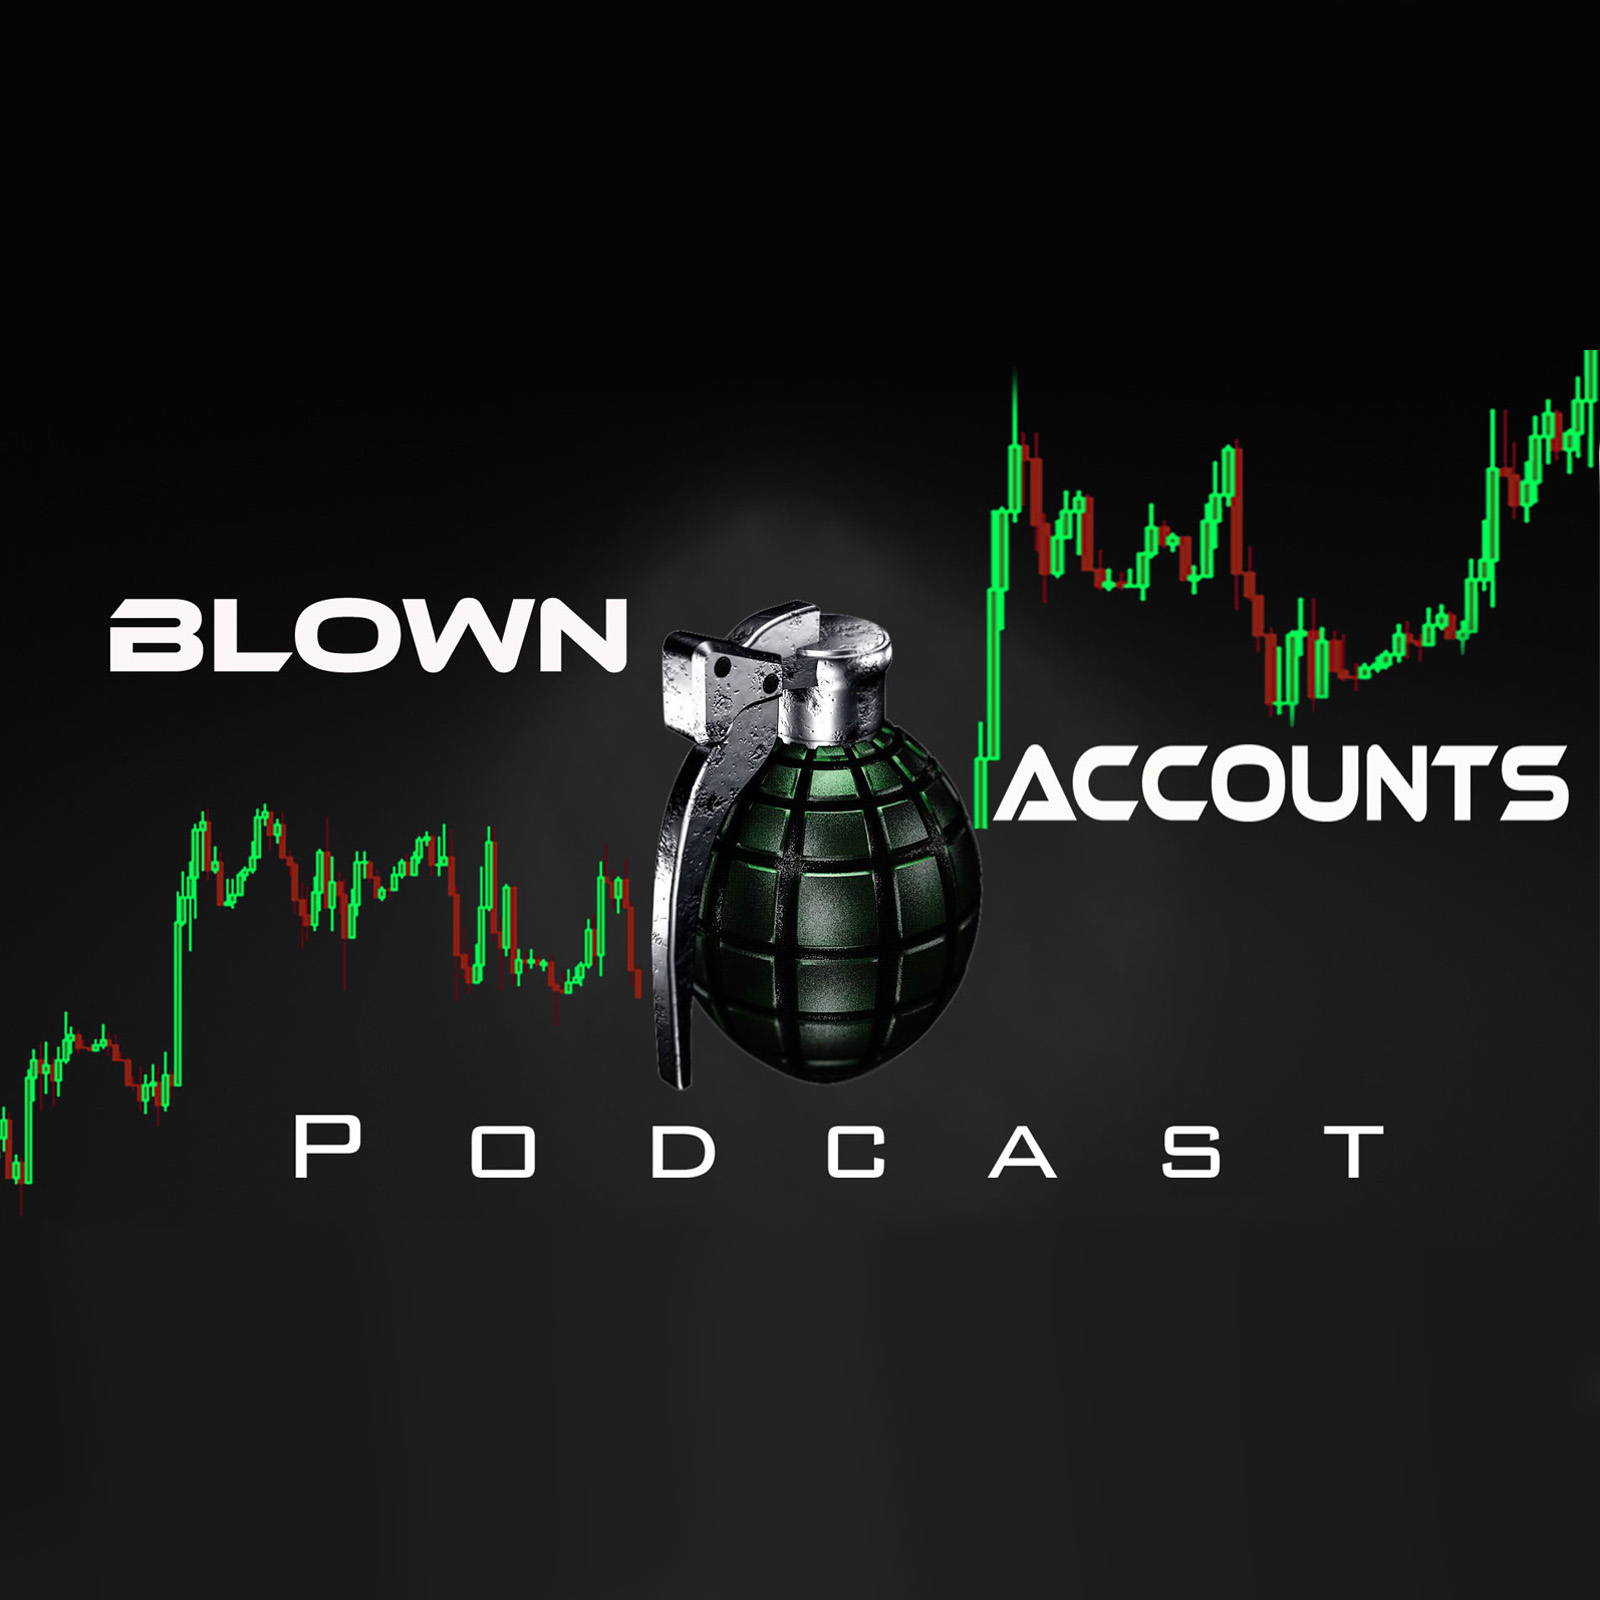 Blown Up Accounts - Podcast - A Podcast developed by one of the Falcon Community Members, featuring some of the traders within the community also Mark Hutchinson of Falcon himself.If you're new trading and getting started with Forex, it's good to hear some of the stories of actual UK based traders.Listen here